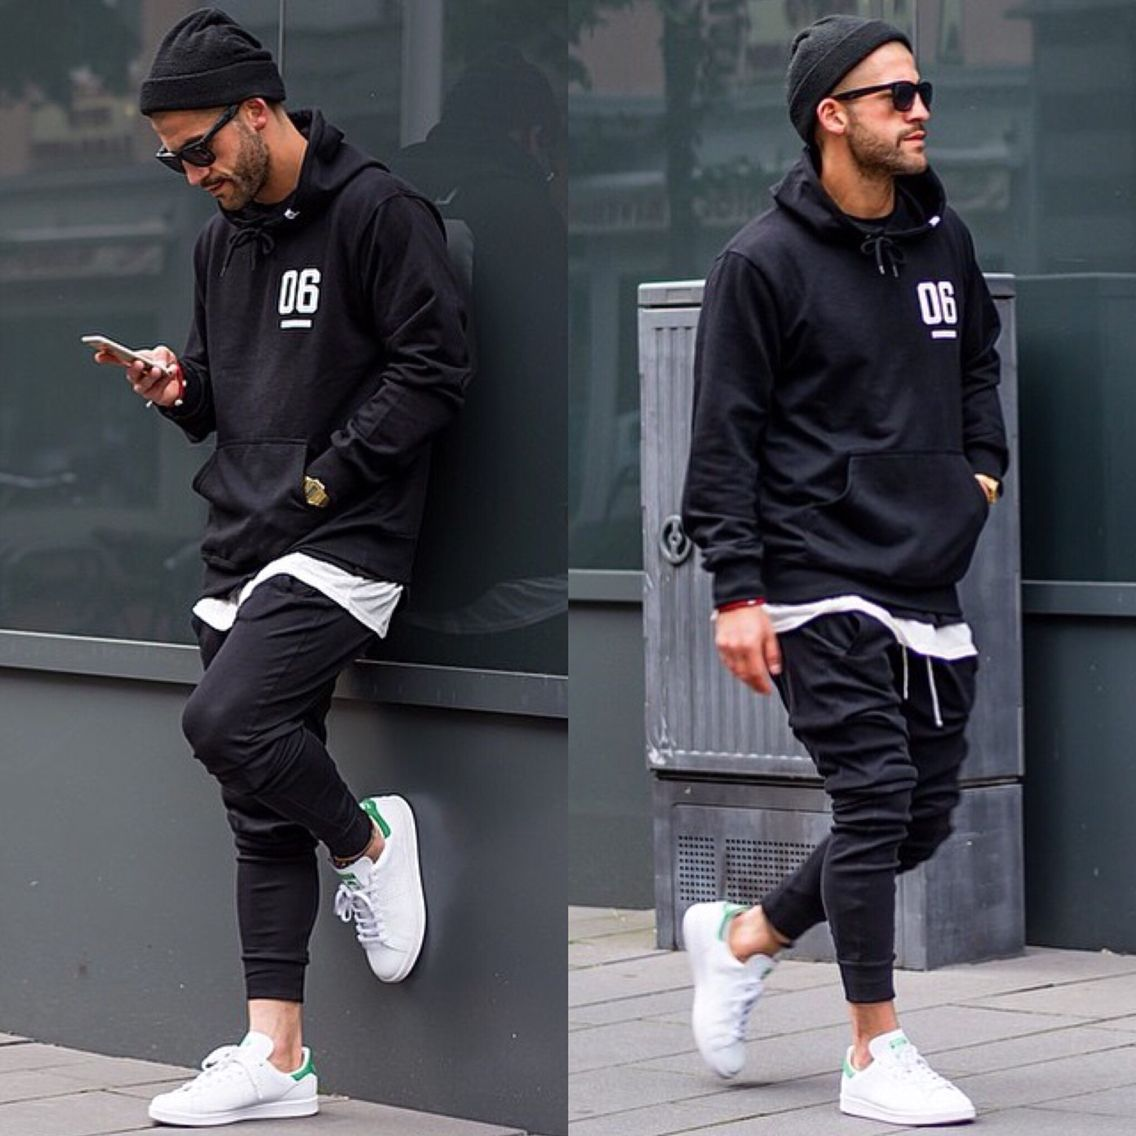 f3d694c23c9ec stylish boys men style casual outfit street kosta williams cool kids ootd